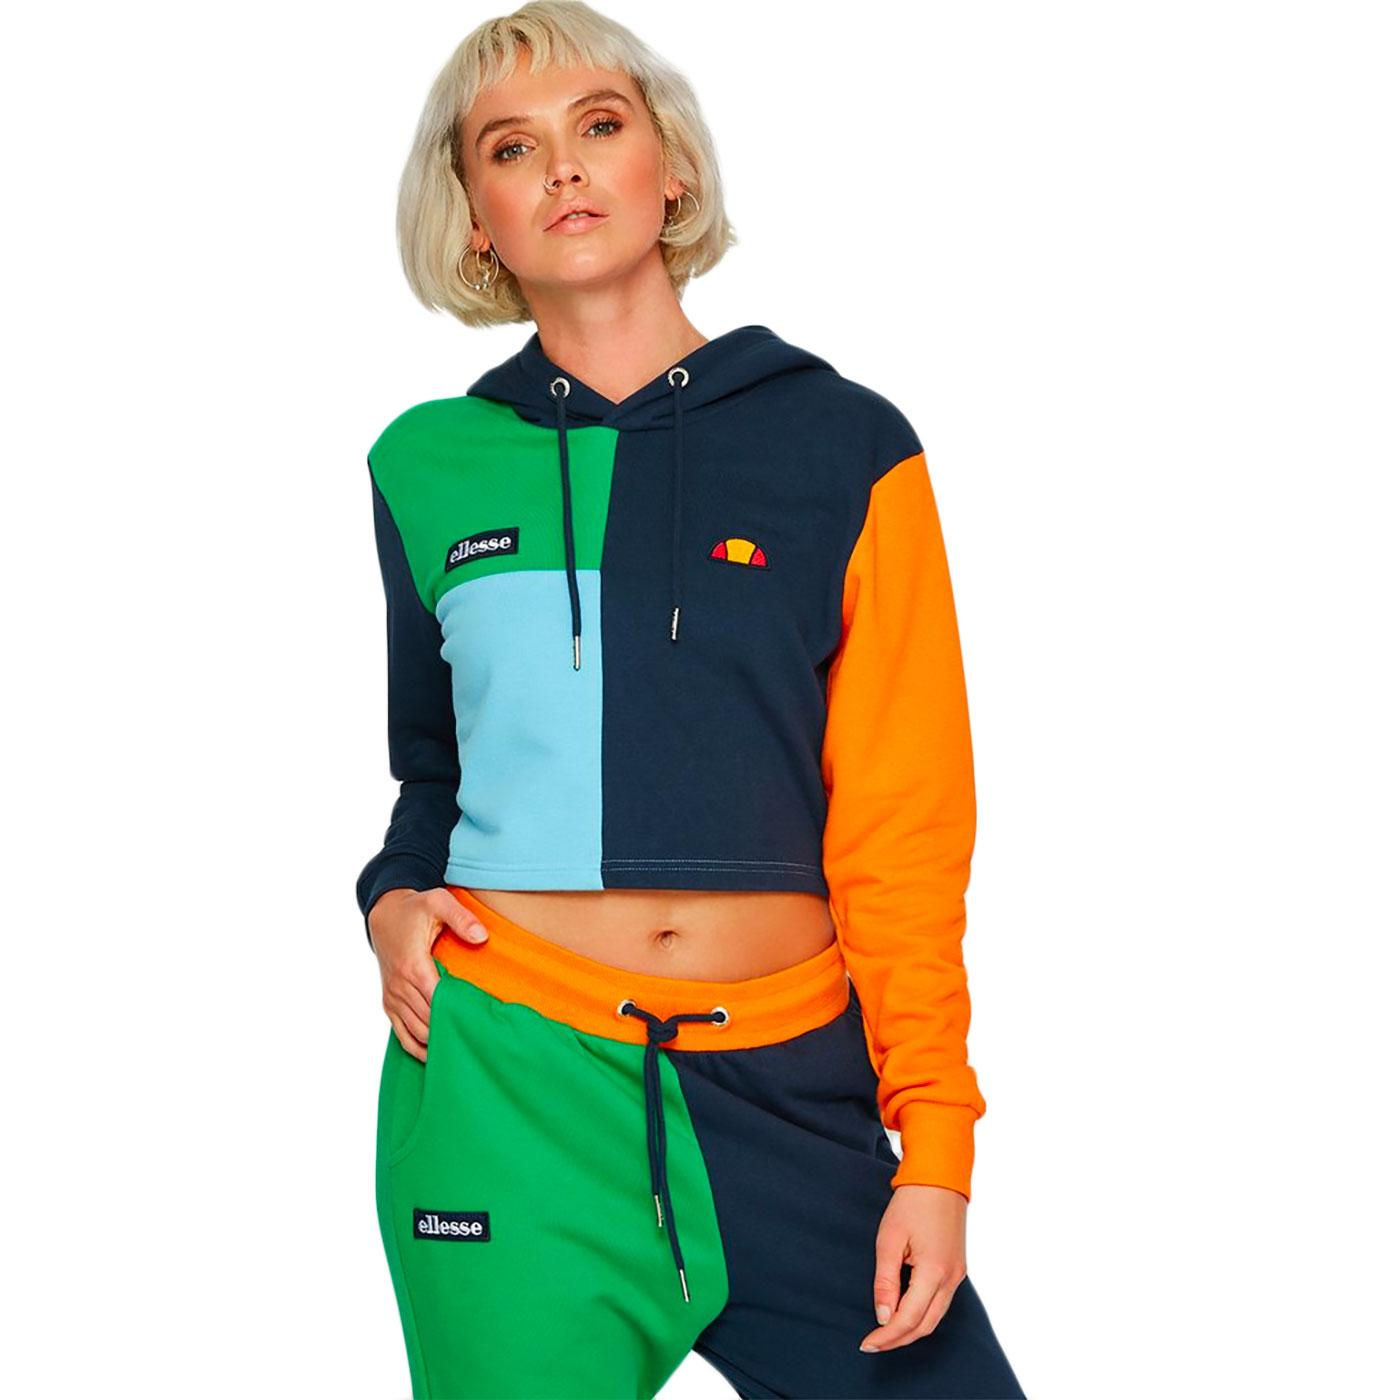 Canel ELLESSE Retro 1980s Colour Block Crop Hoodie